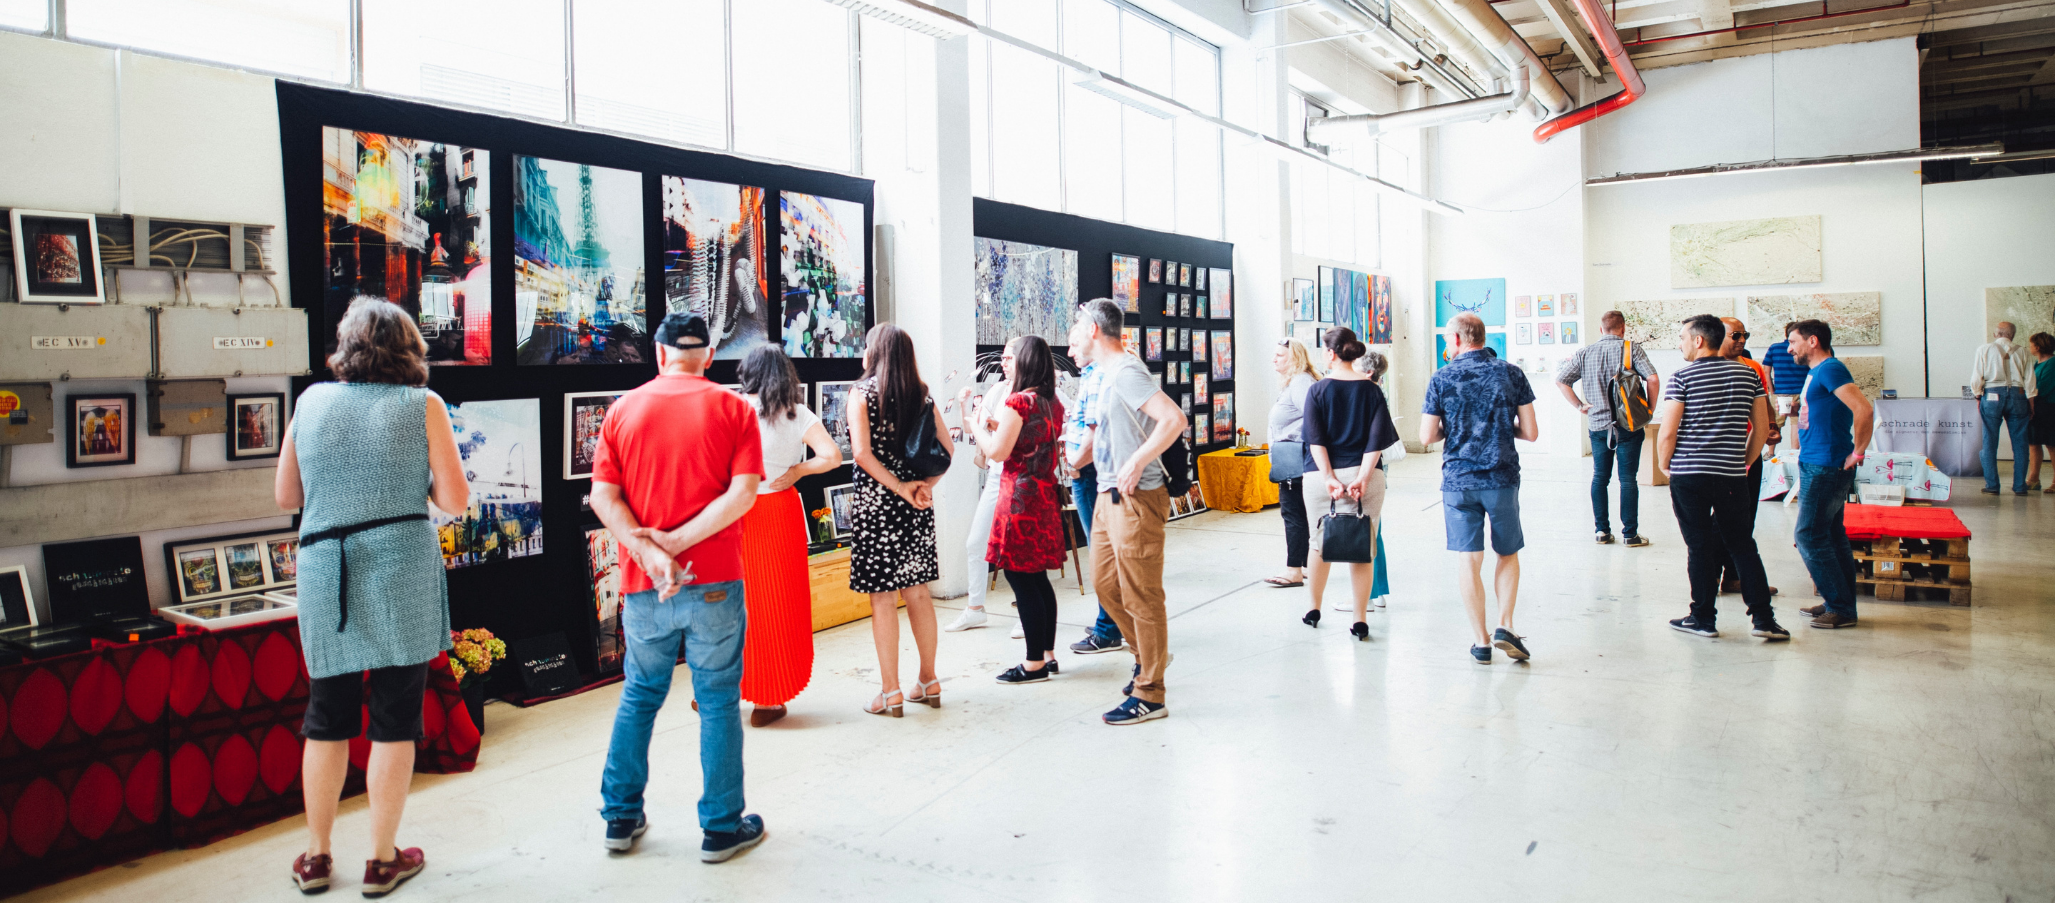 The Unwritten Rule Of Getting A Guaranteed Return From Your Exhibition Investment